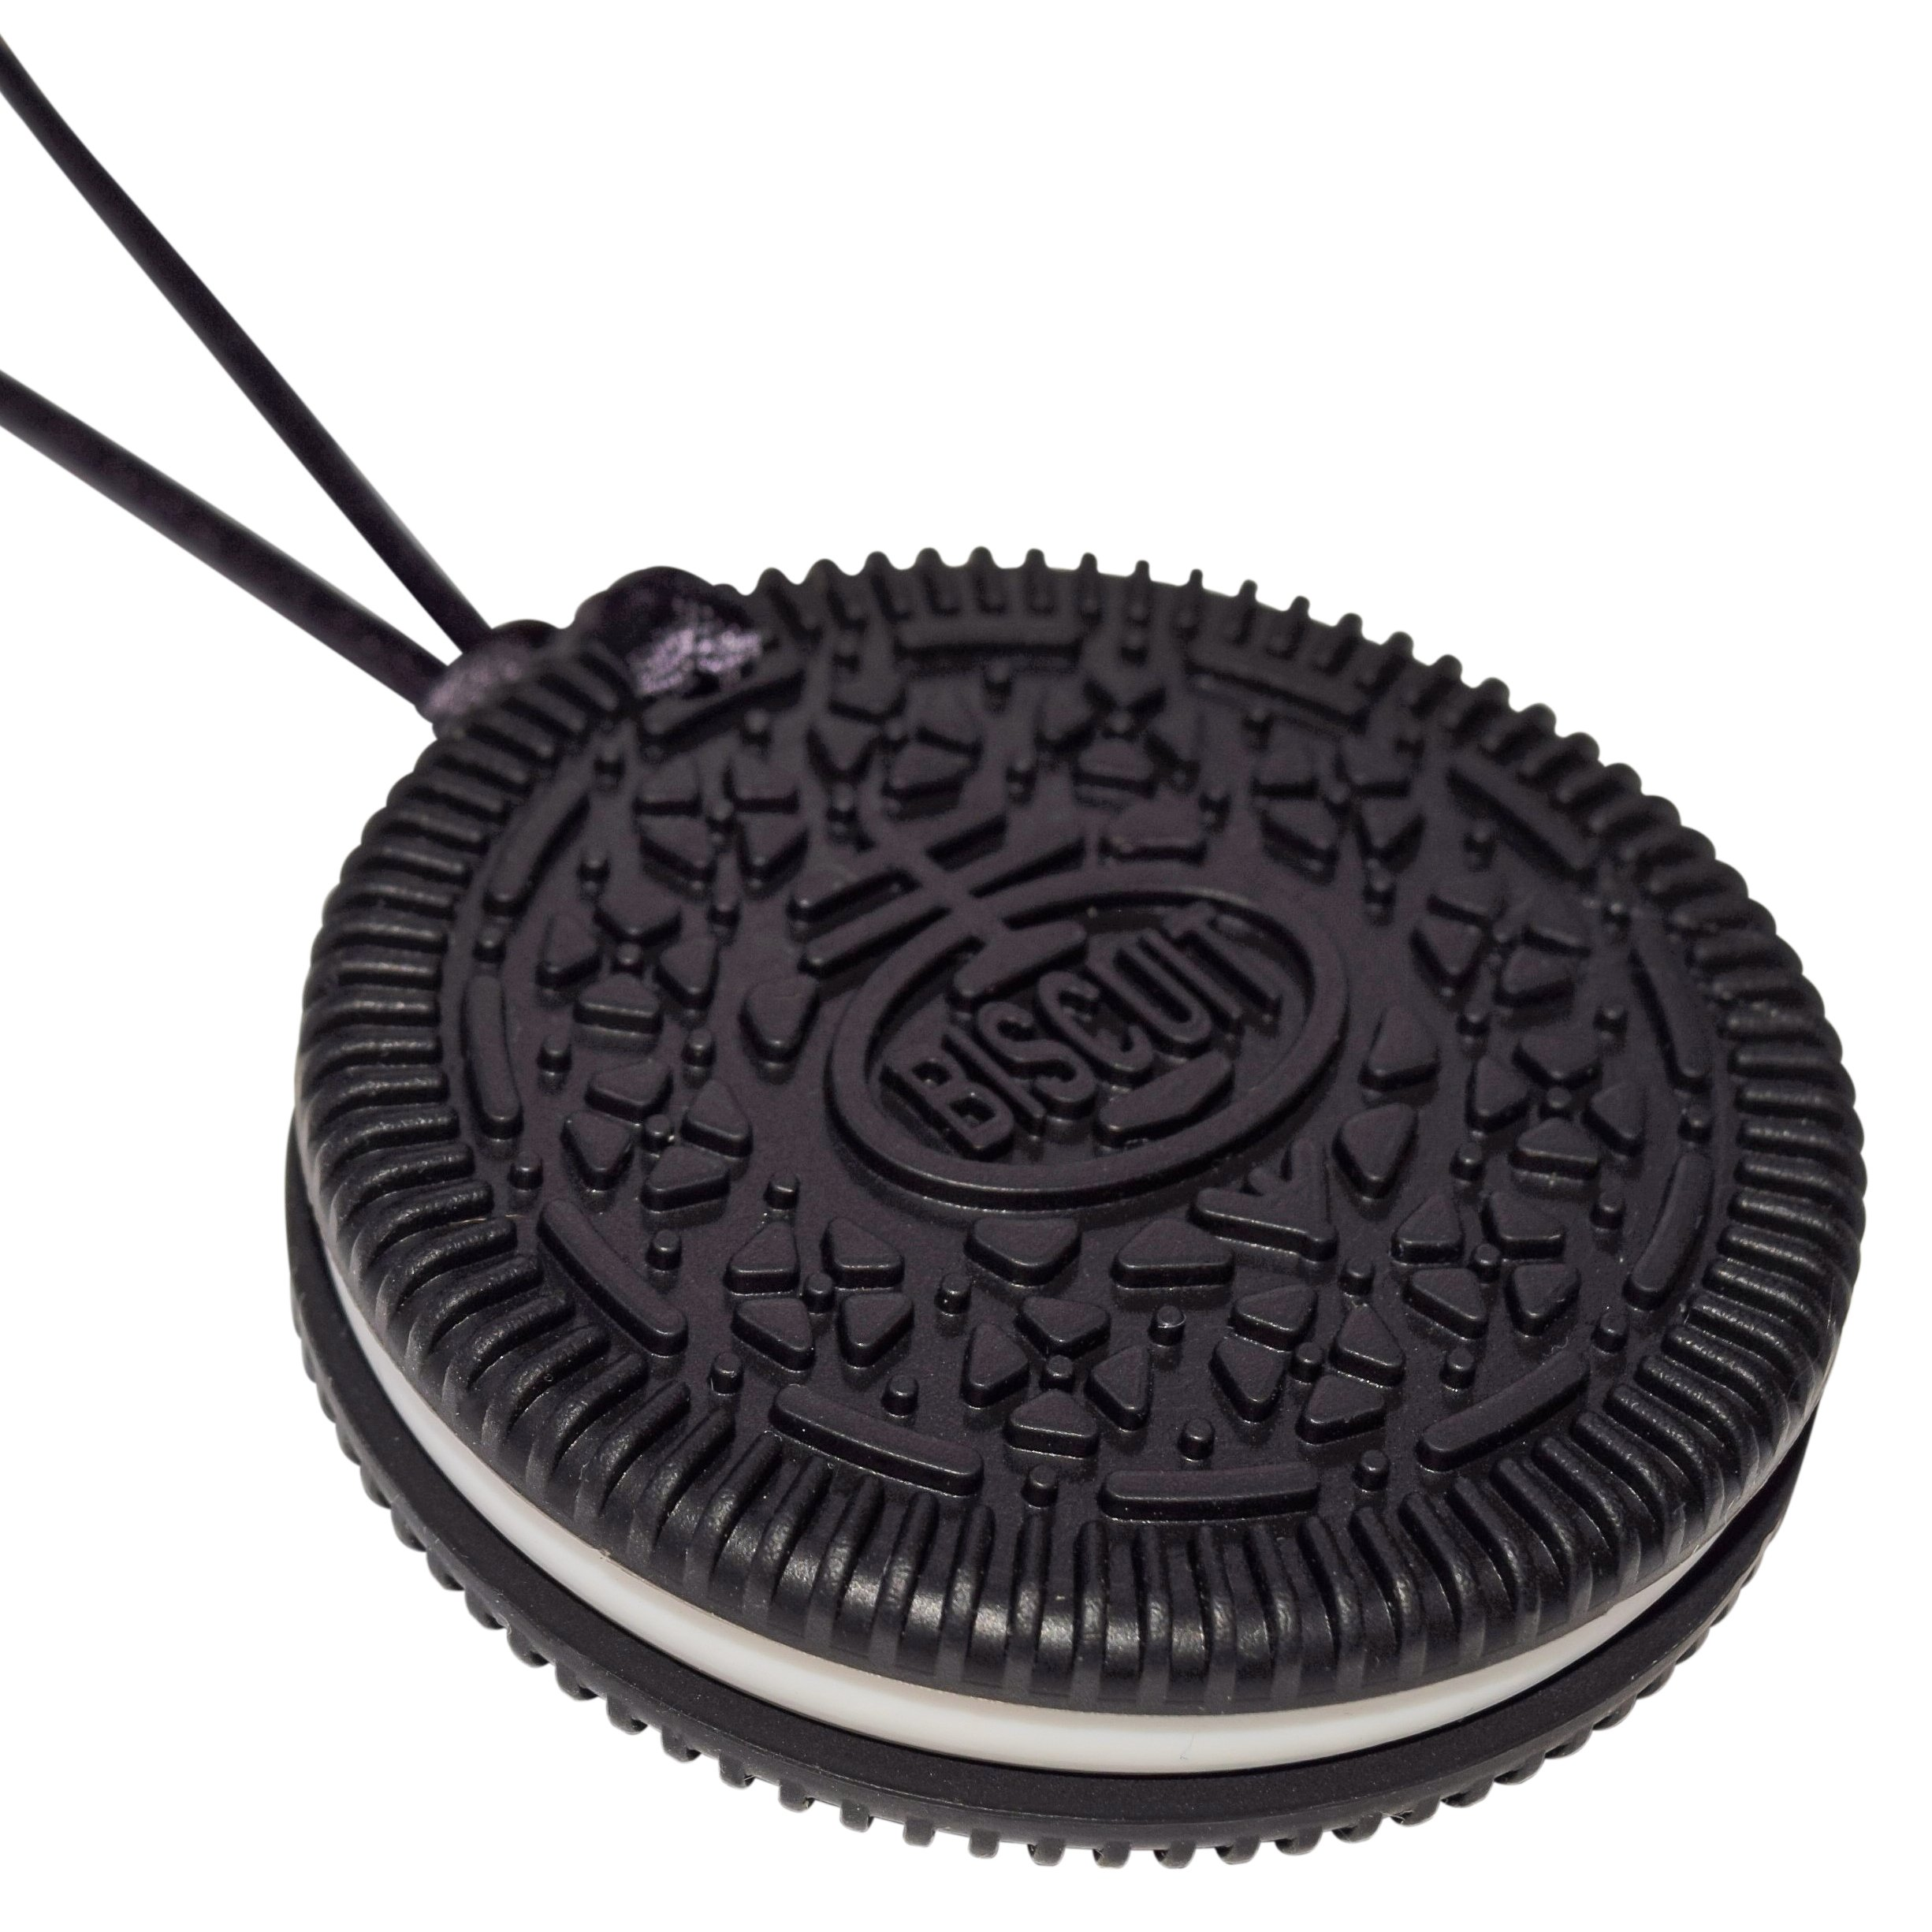 Sensory Oral Motor Aide Chewelry Necklace - Munchables Biscuit Chewy (Black)